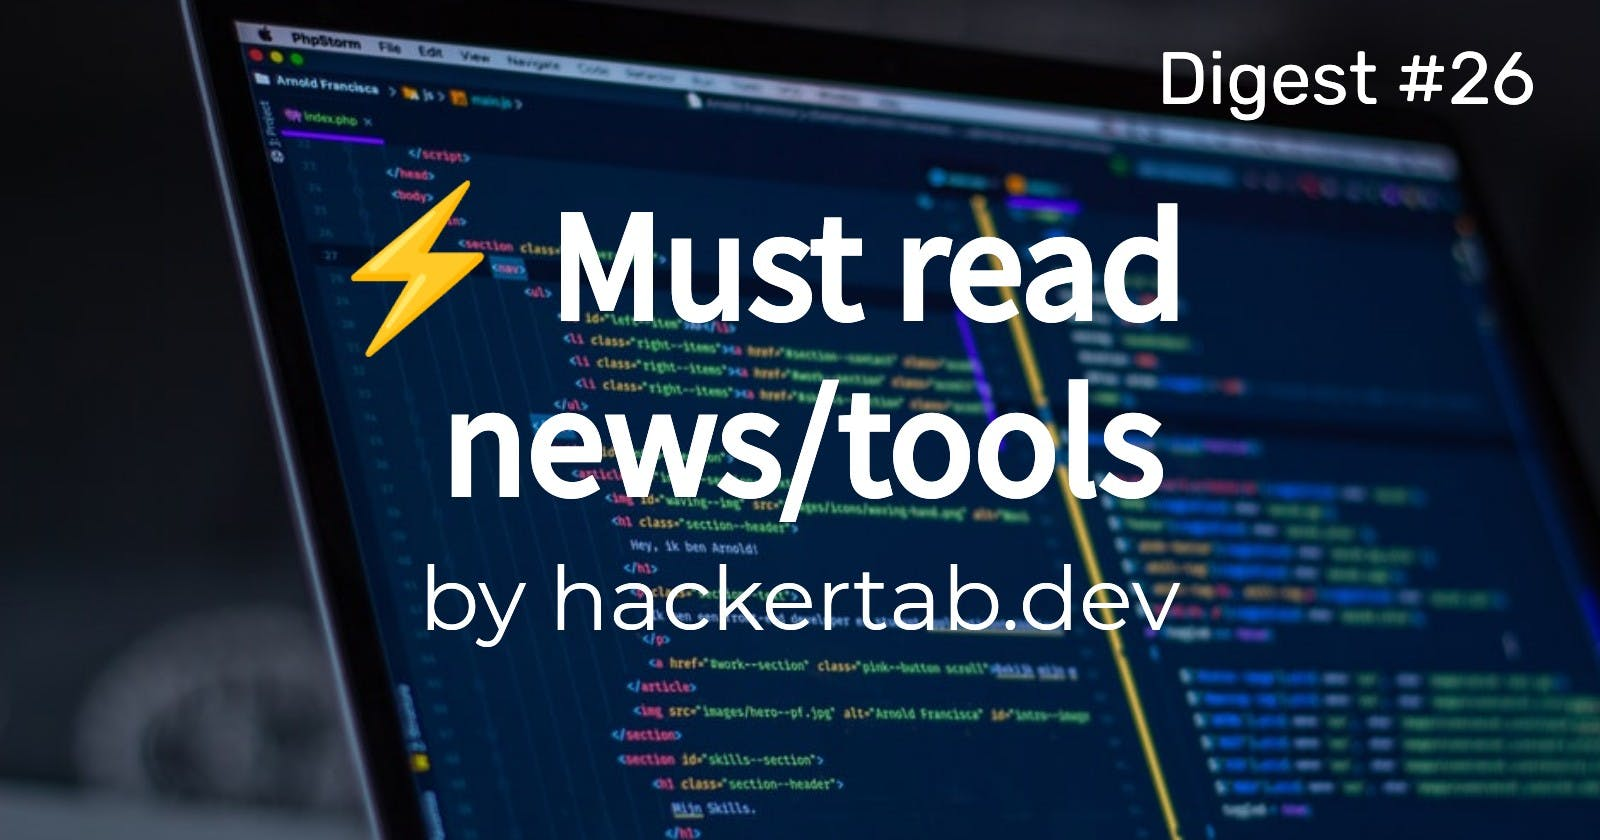 🔥 Trending News, Repos and Products of the day - Digest #26